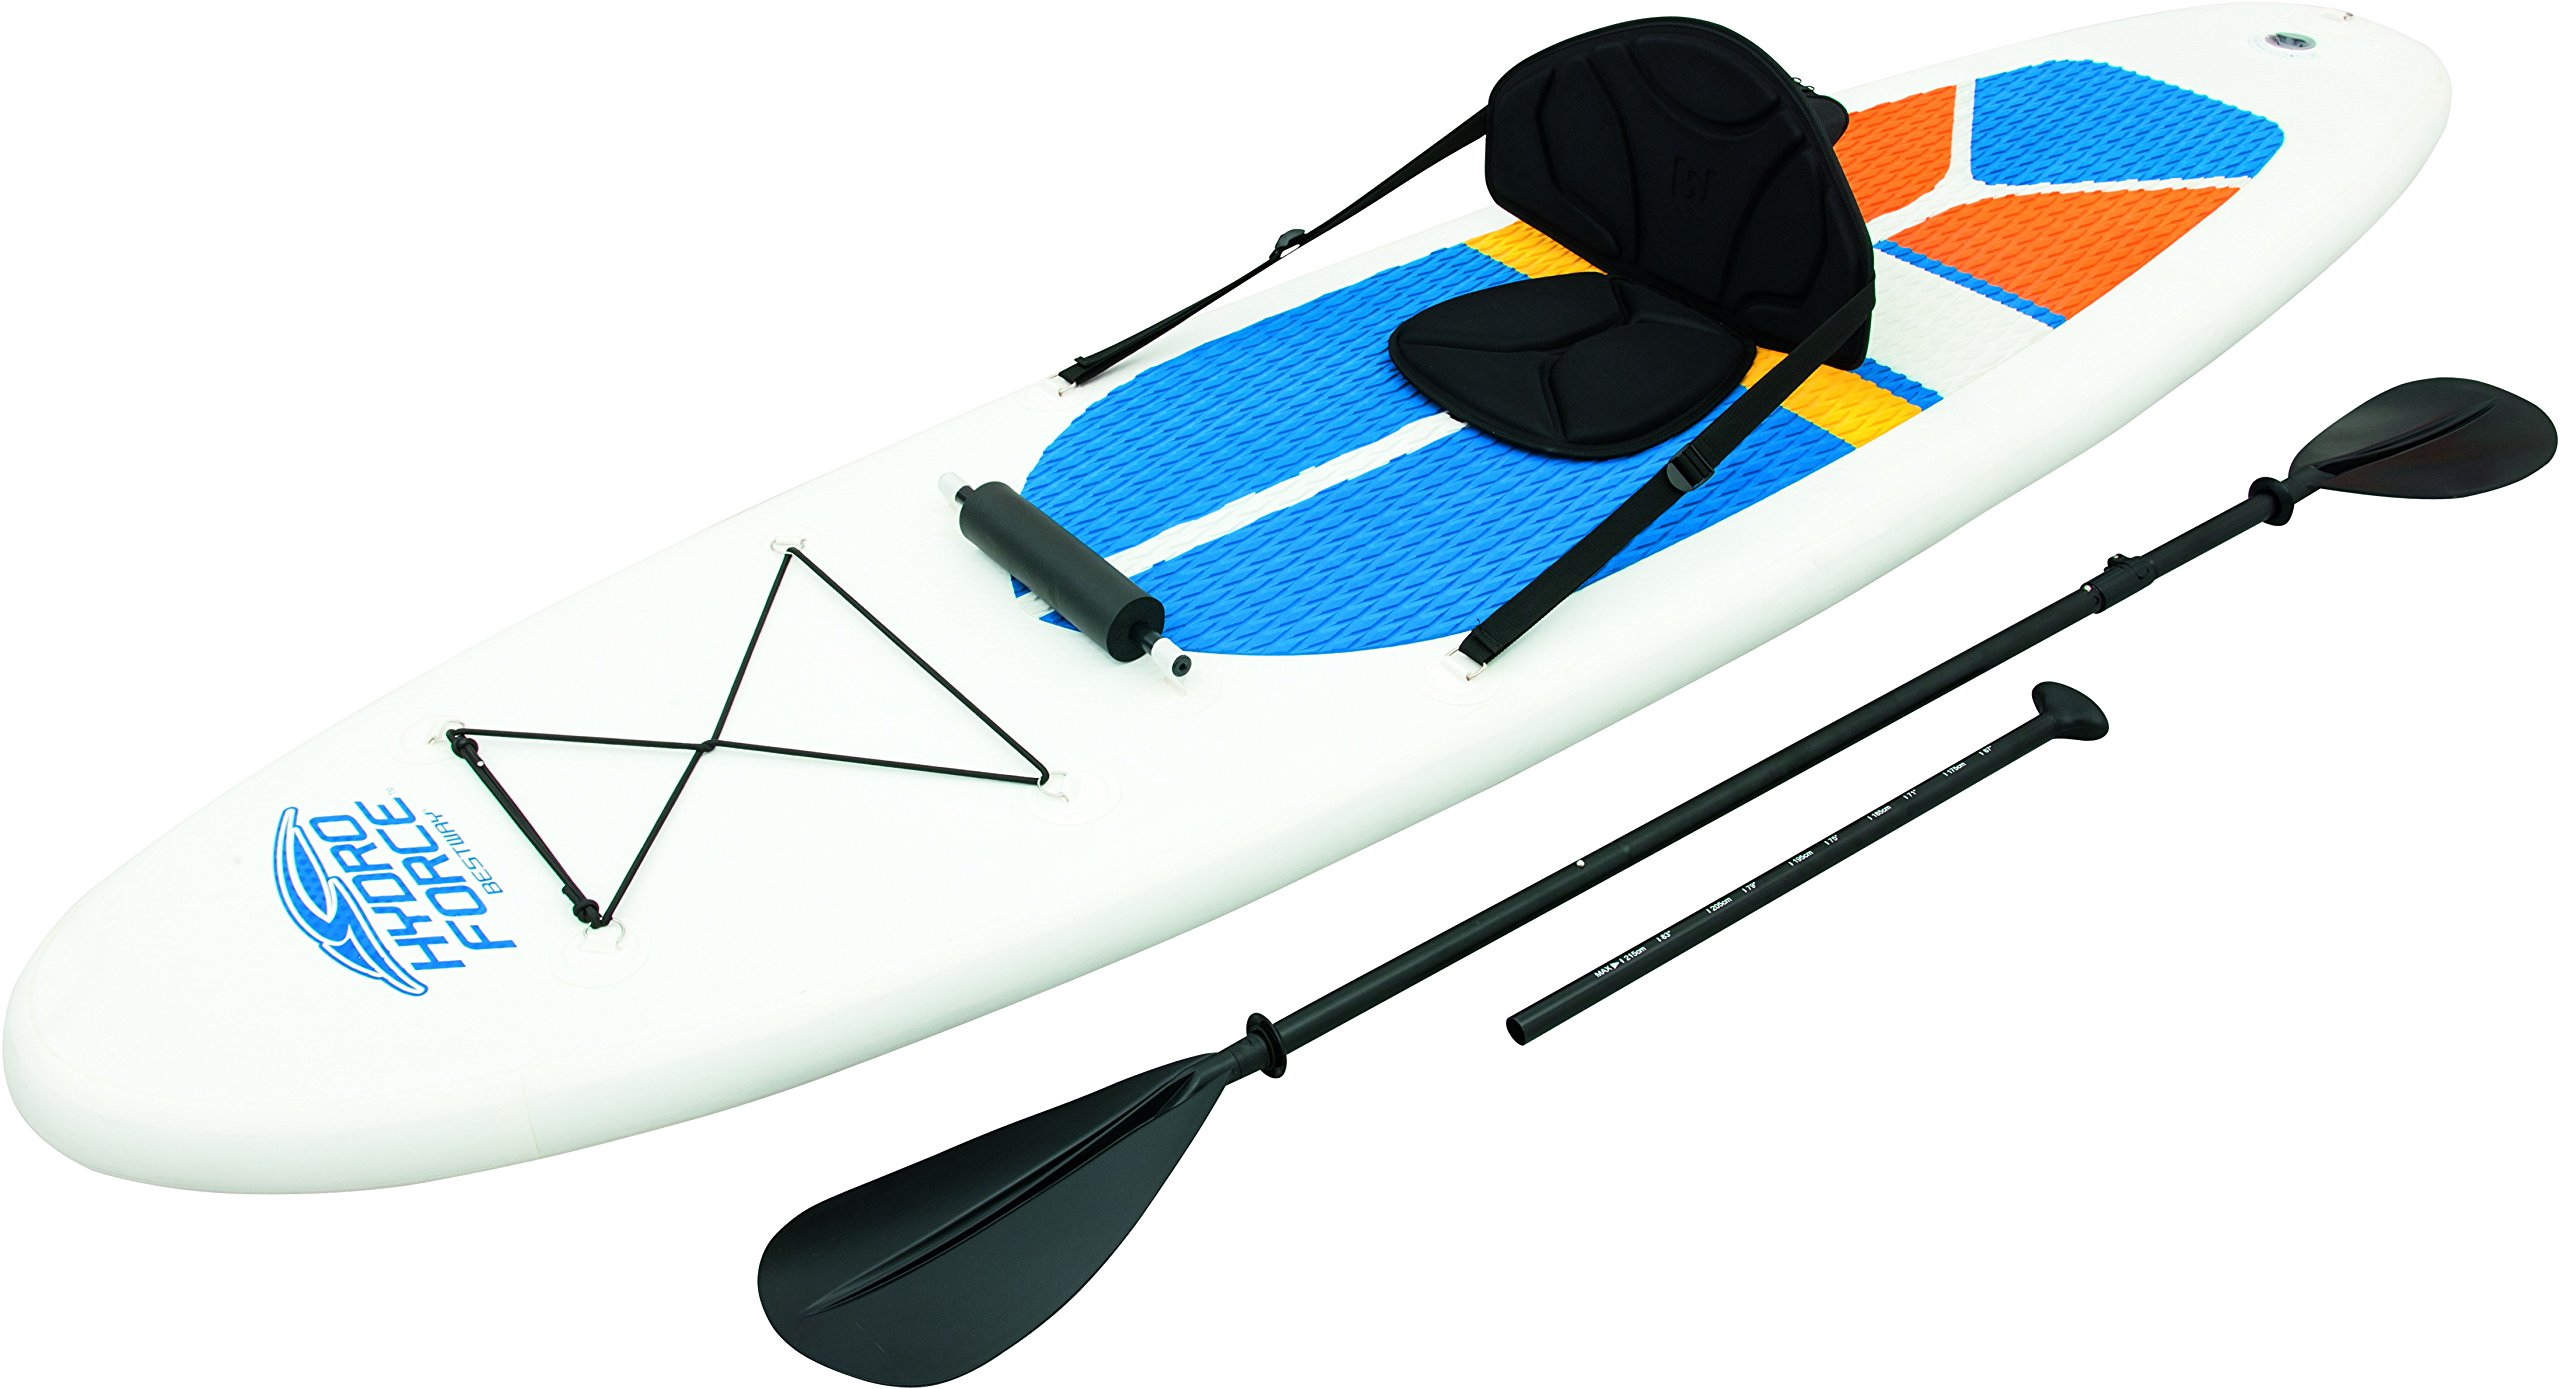 hydro force 10ft inflatable stand up paddle board sup with kayak set ebay. Black Bedroom Furniture Sets. Home Design Ideas